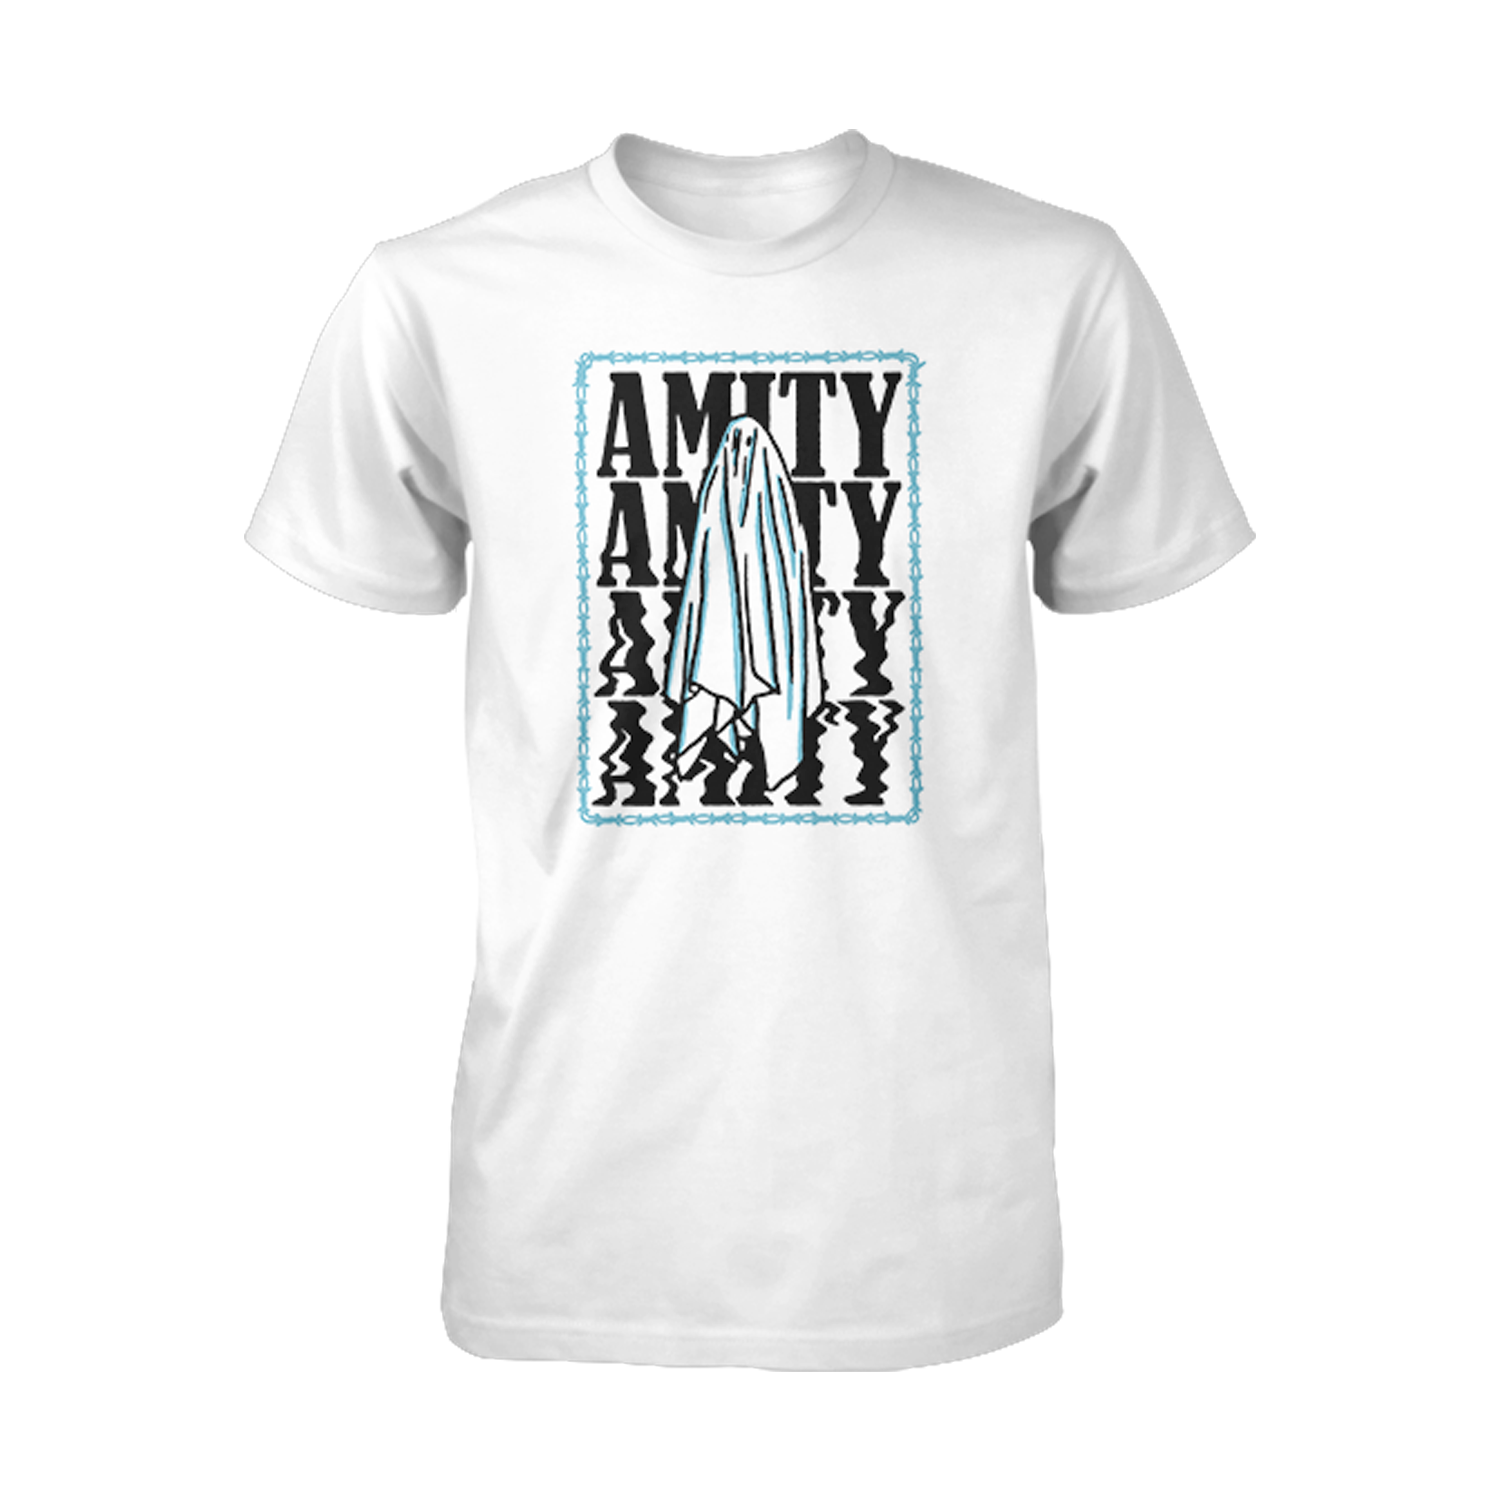 The Amity Affliction 'Everyone Loves You... Once You Leave Them' Ghost T-Shirt (white)